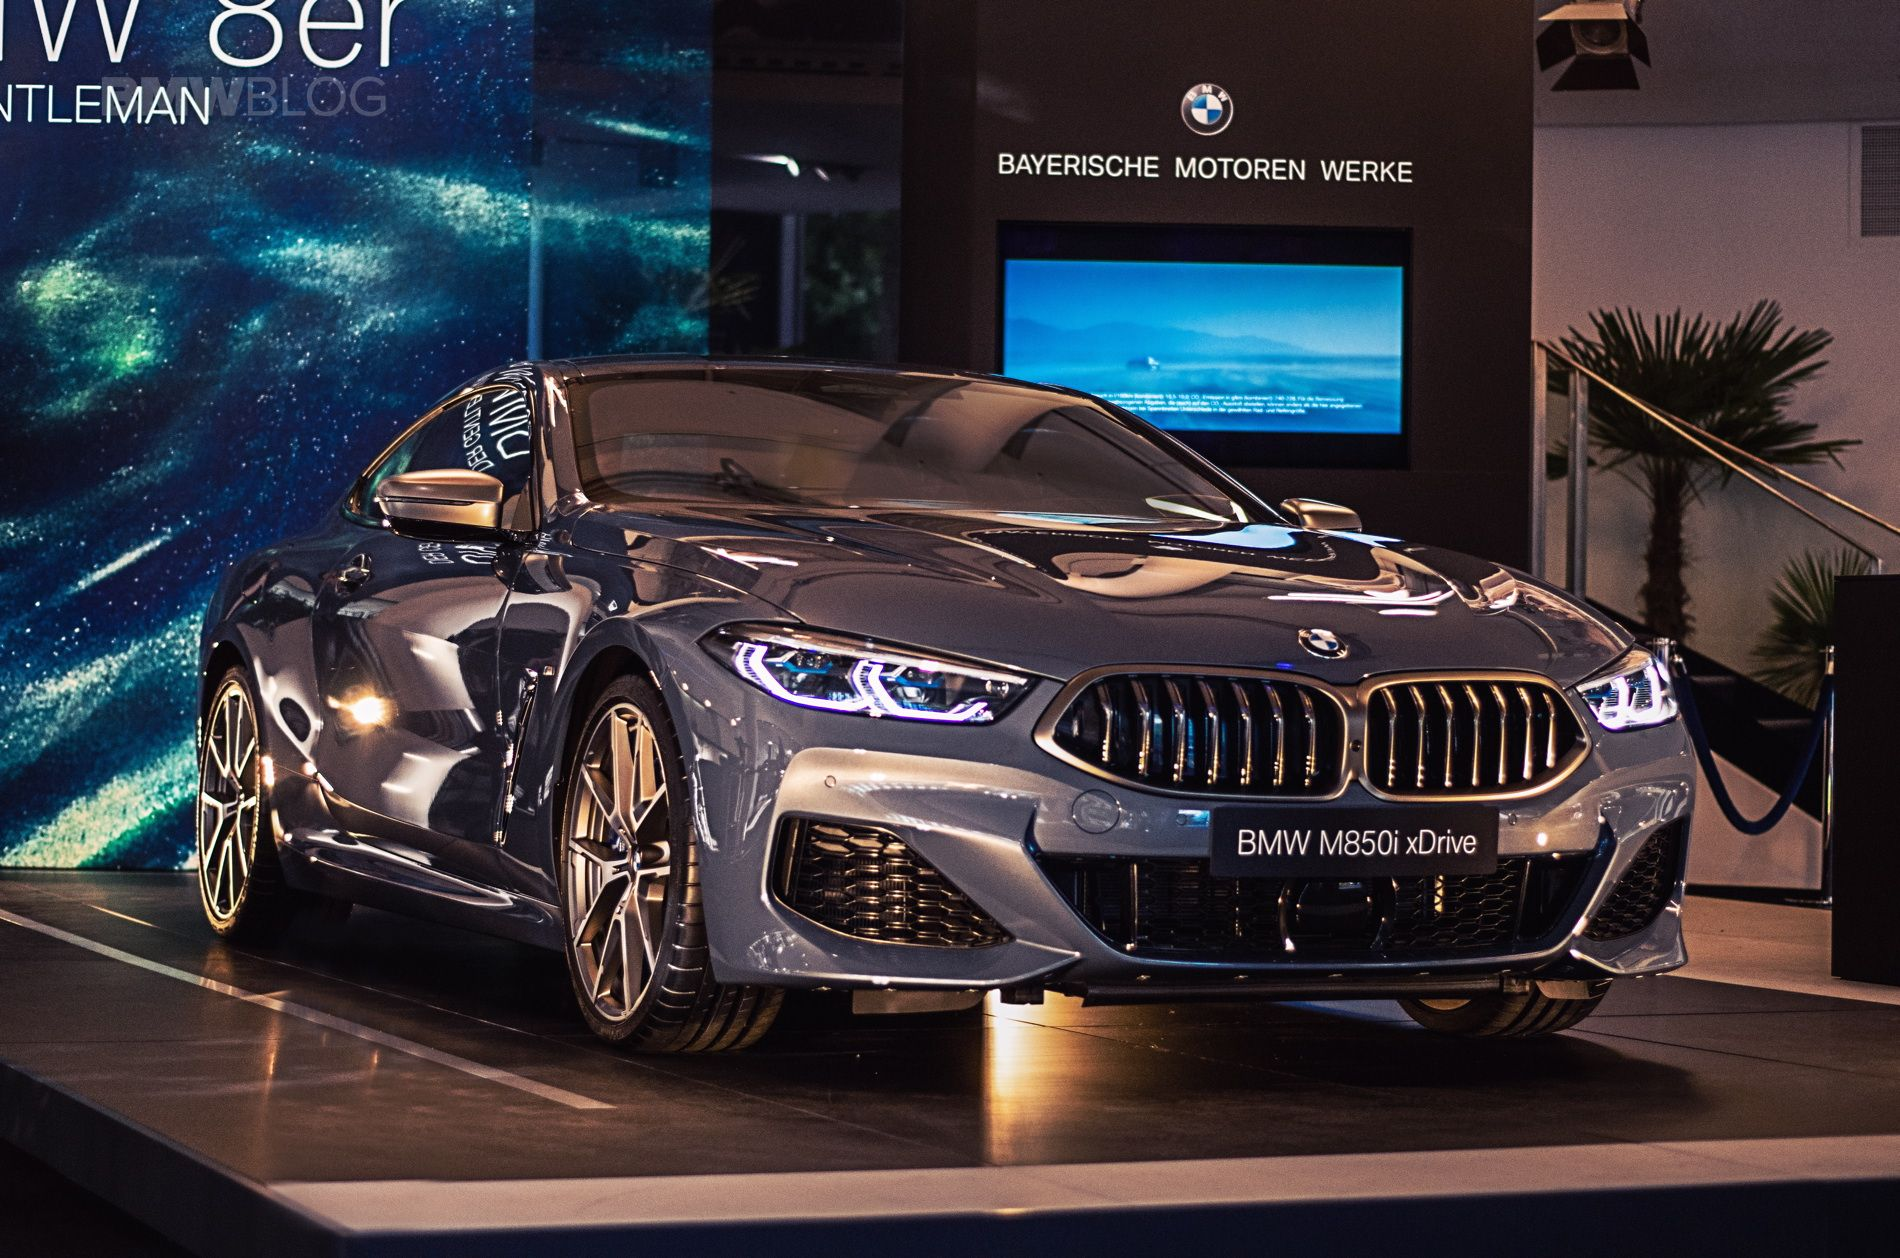 Cool Photos Of The 2019 Bmw M850i Coupe Bmw Super Fast Cars